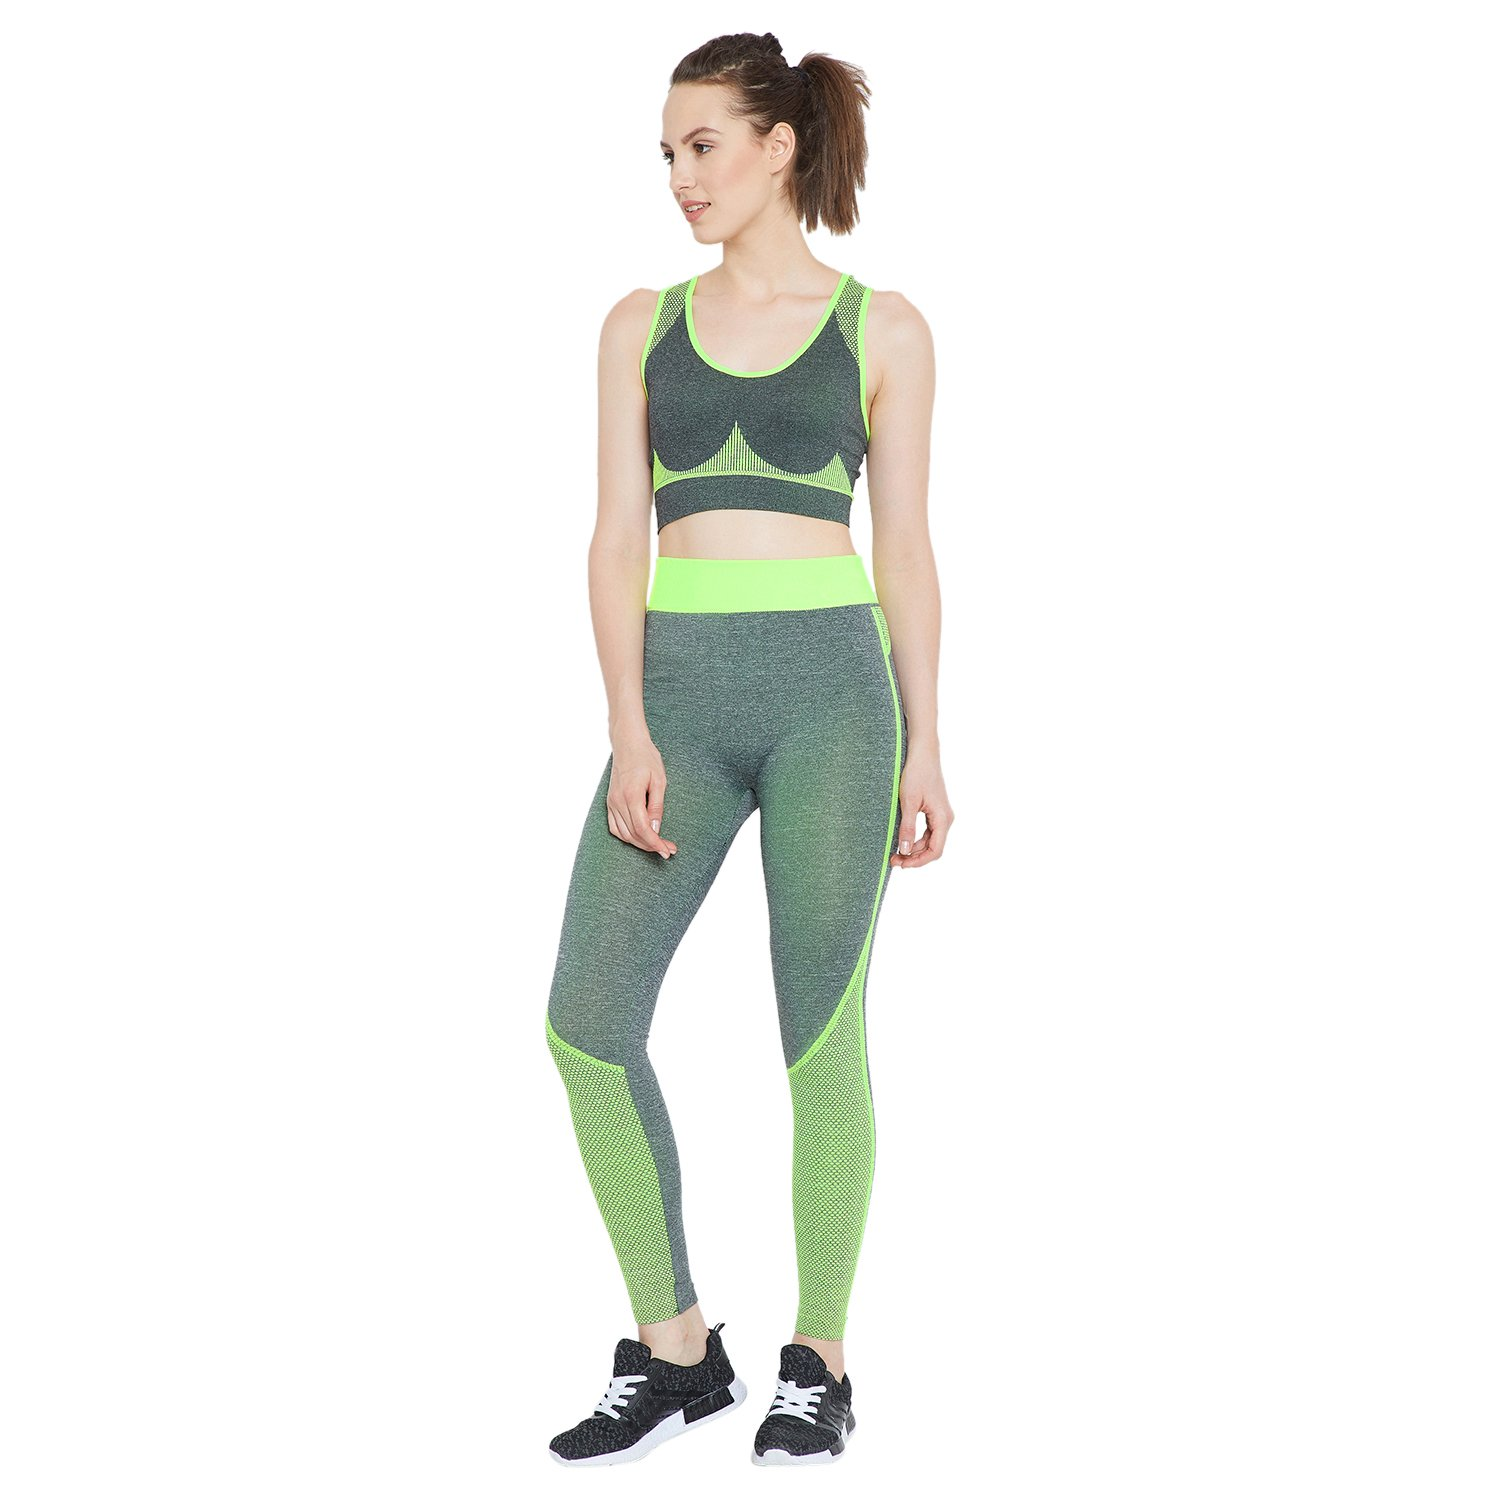 f8e51d003ed CAMEY Women s Synthetic Sport Set (Green